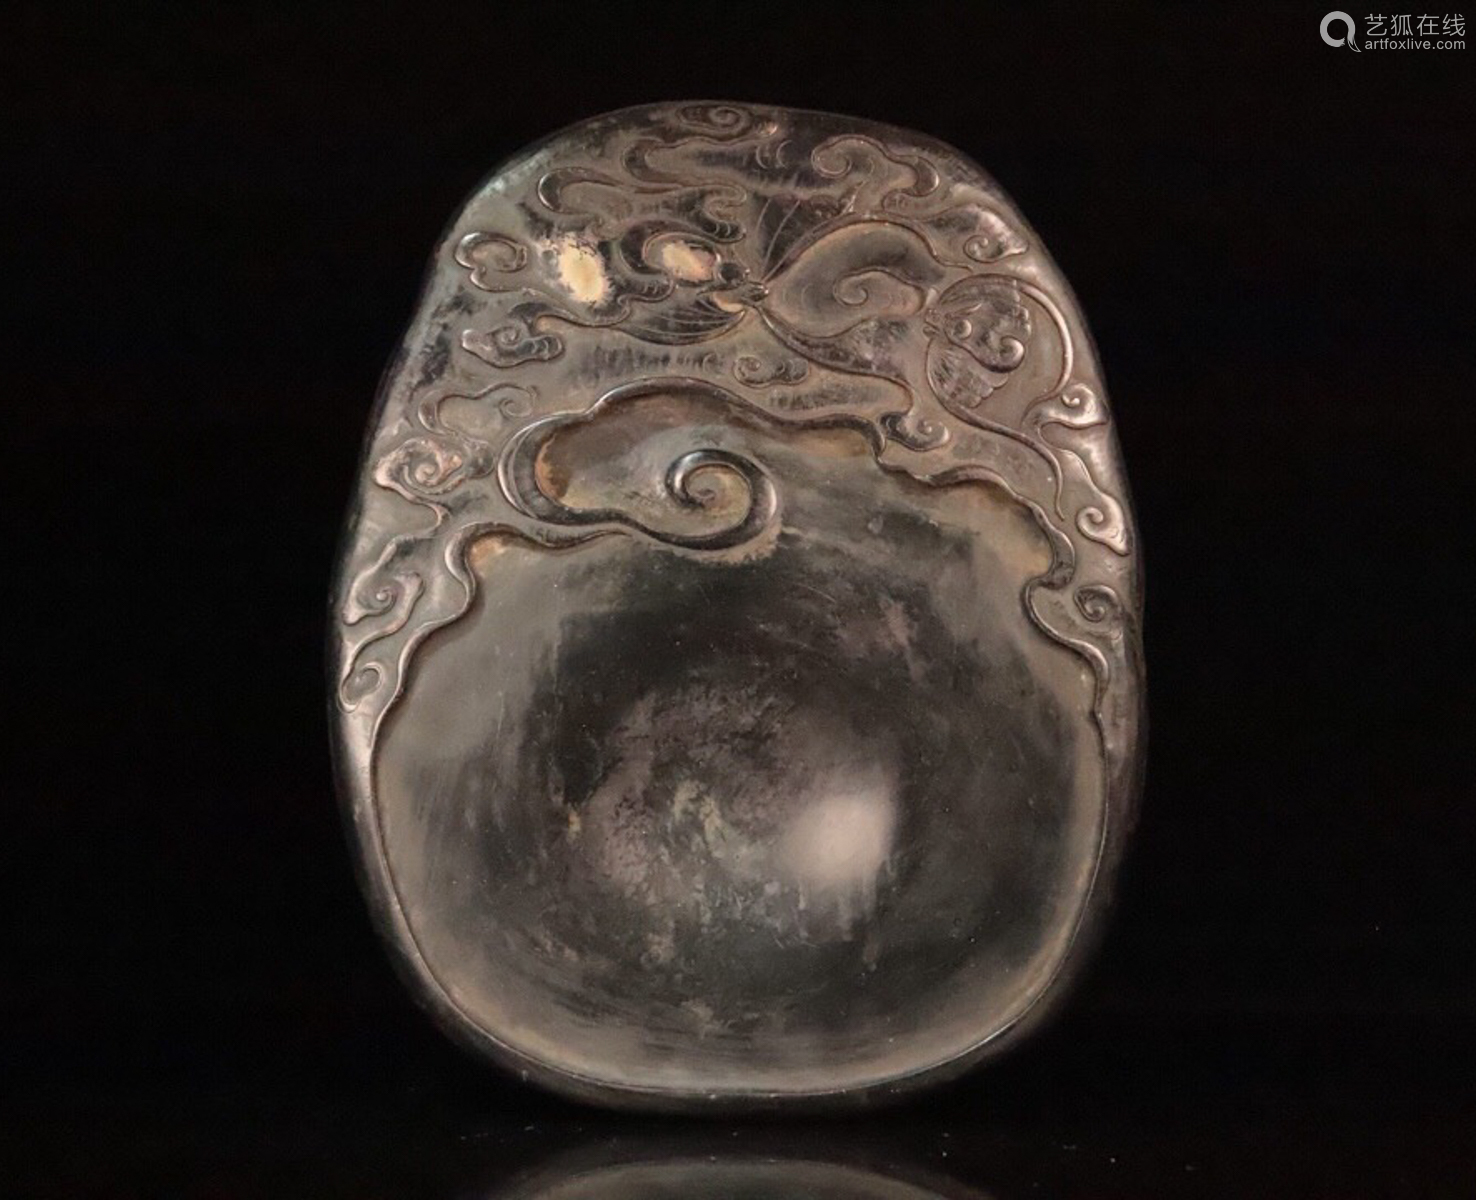 A DUAN STONE CARVED BEAST SHAPED INK SLAB